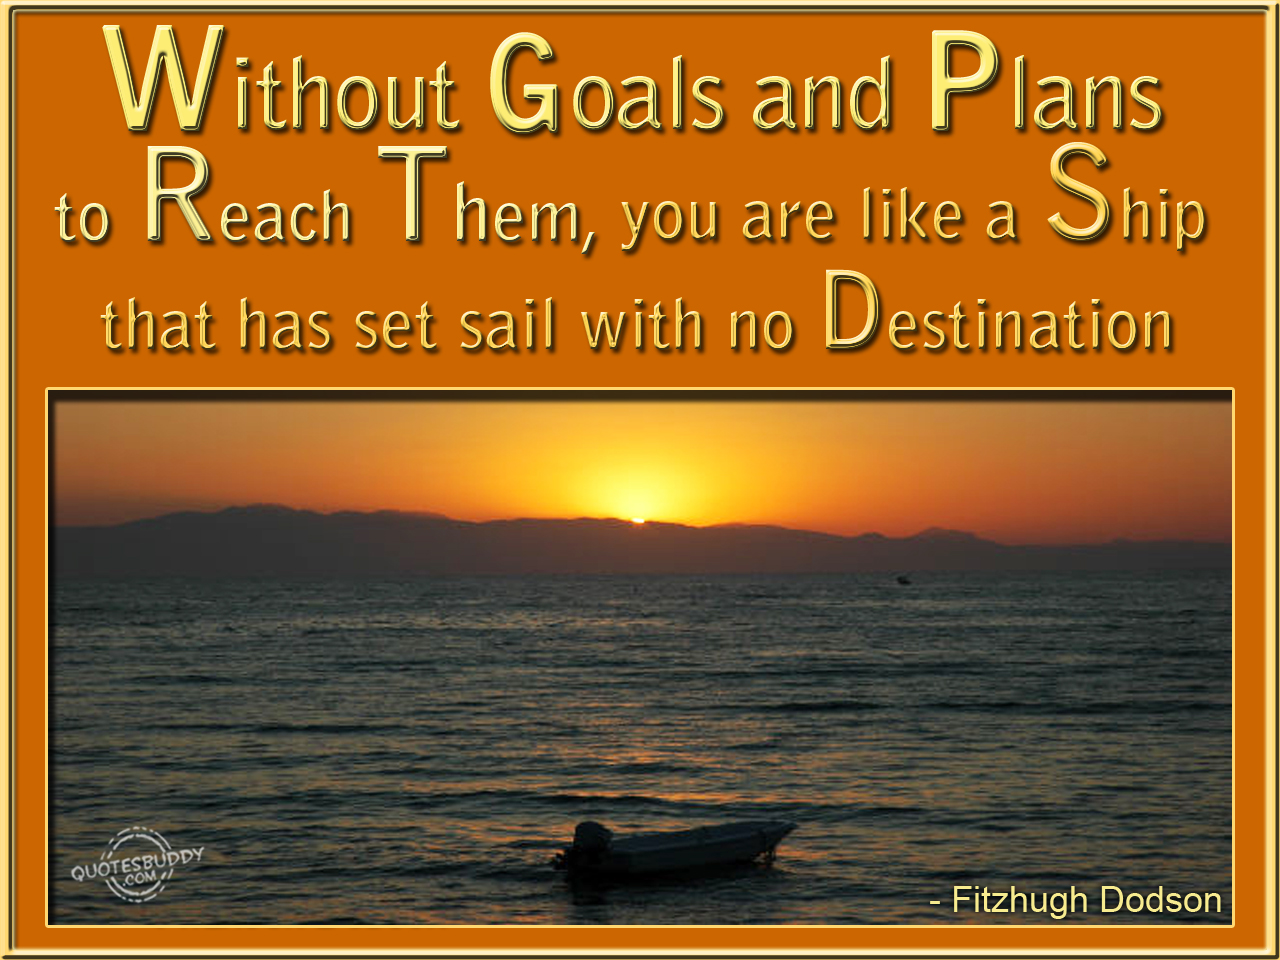 Without Goals And Plans To Reach The, You Are A Ship That Has Set With No Destination